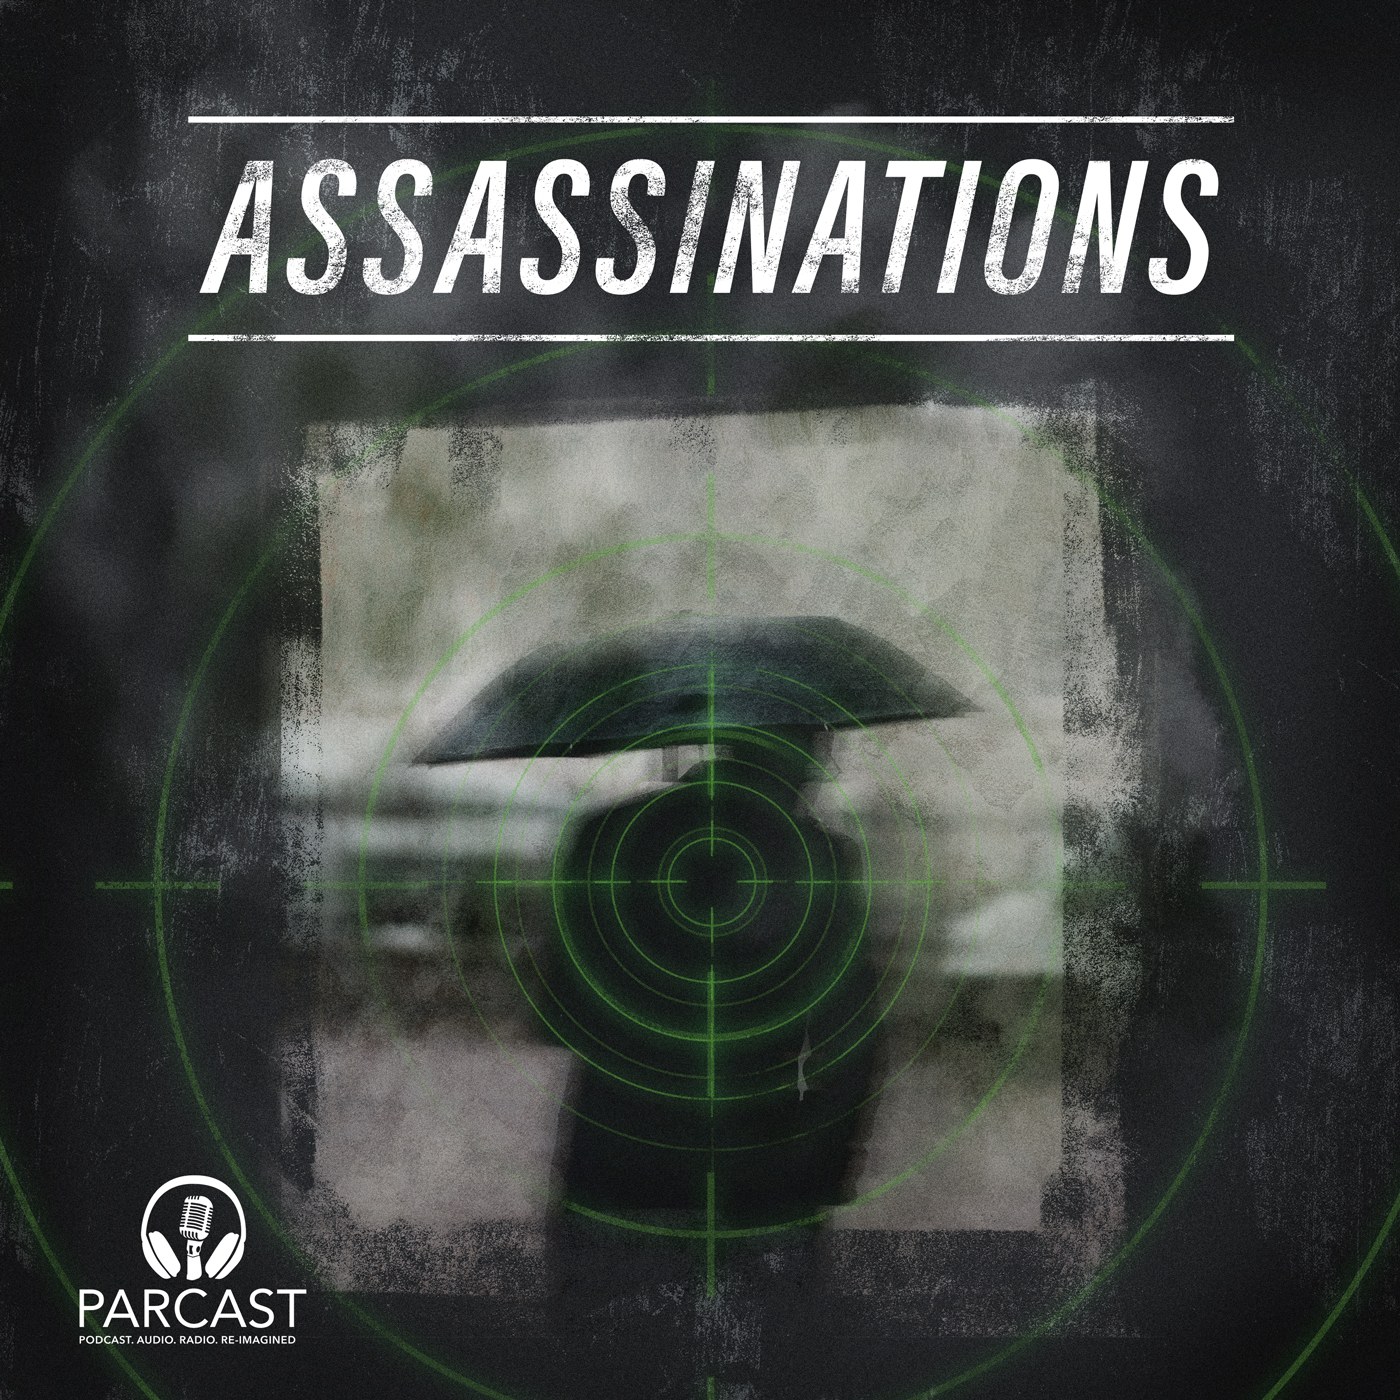 Parcast_CoverArt_Assassinations_Final_1400px.jpg